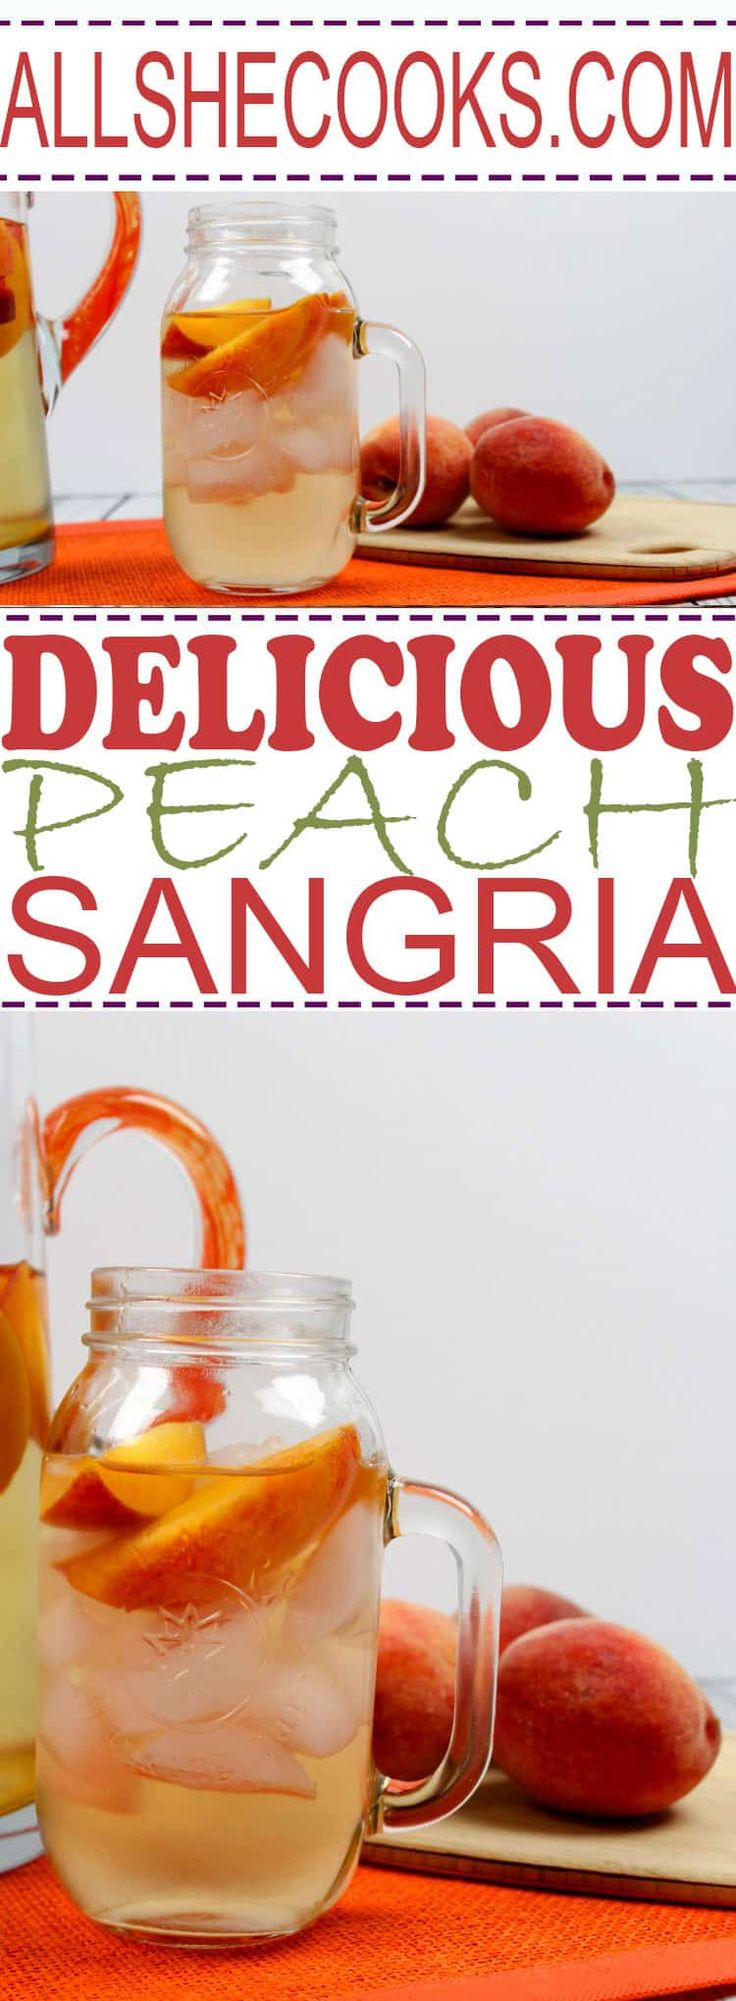 You'll love tasty sangria summer recipe. This Peach Sangria is the perfect sparkling white wine sangria recipe.